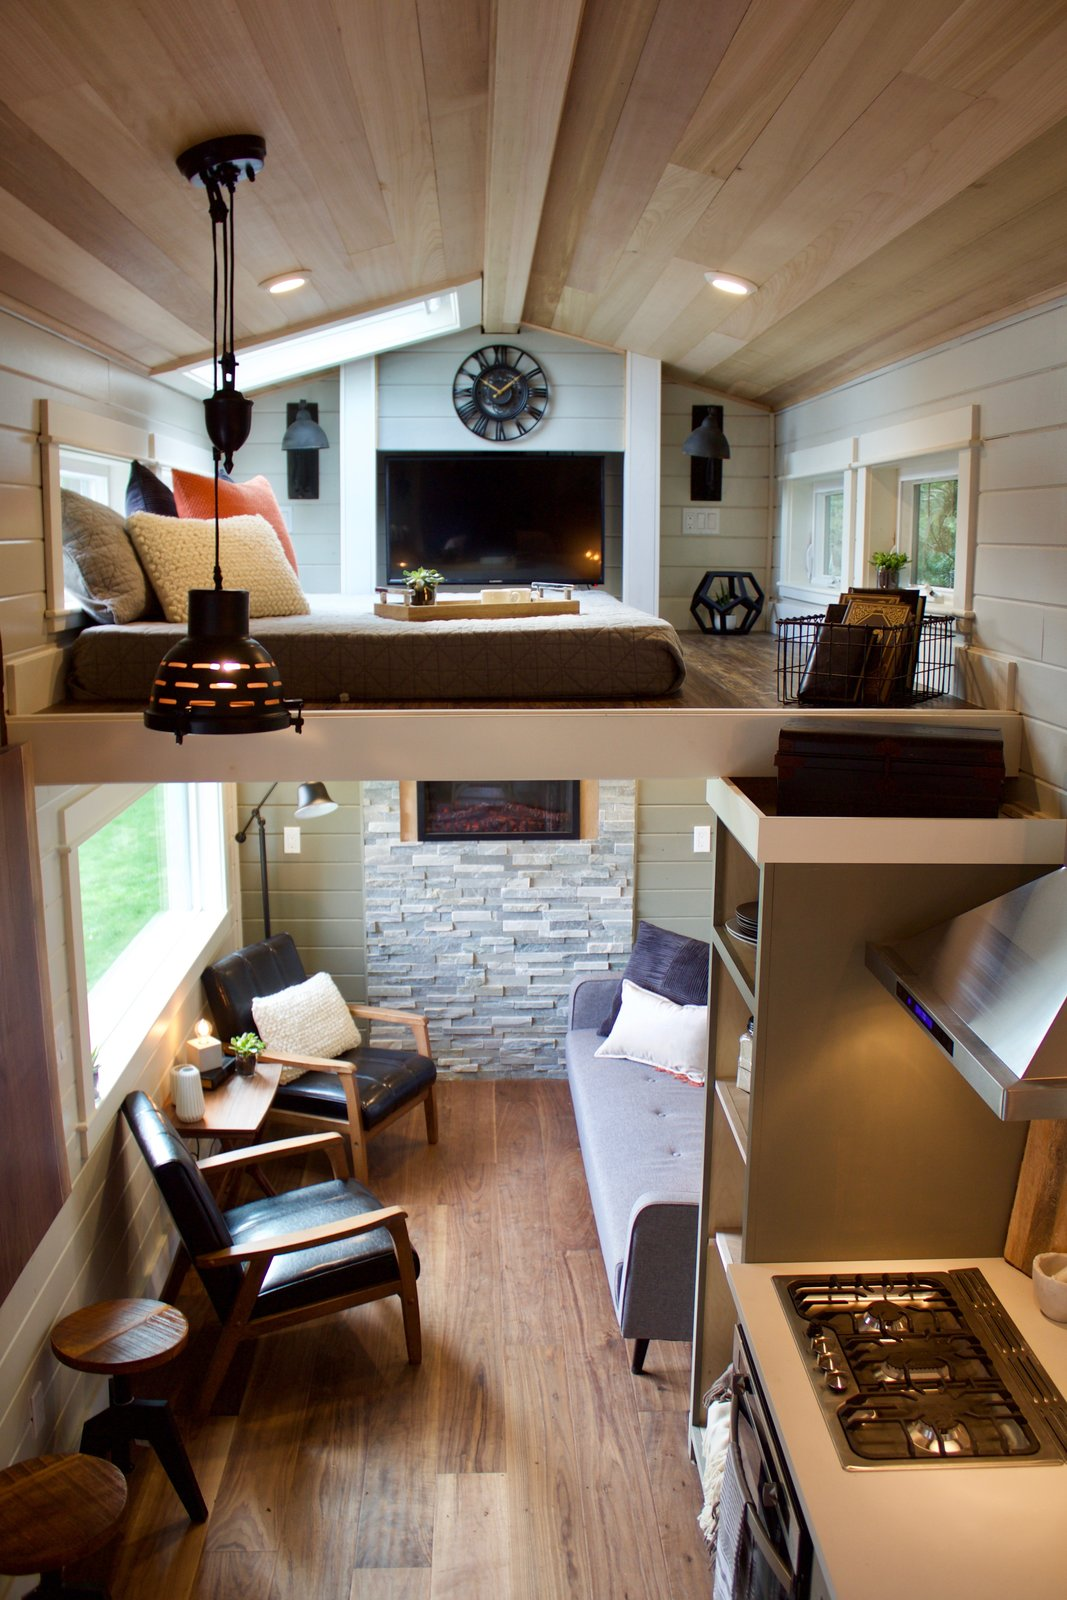 Bedroom, Bed, Pendant Lighting, Medium Hardwood Floor, and Ceiling Lighting The spacious living room features a fireplace and a remote-controlled, automated TV lift that slides upwards from the living room up to the master loft.   Photo 14 of 20 in This Oregon Company Crafts Exceptional Tiny Homes Starting at $40K